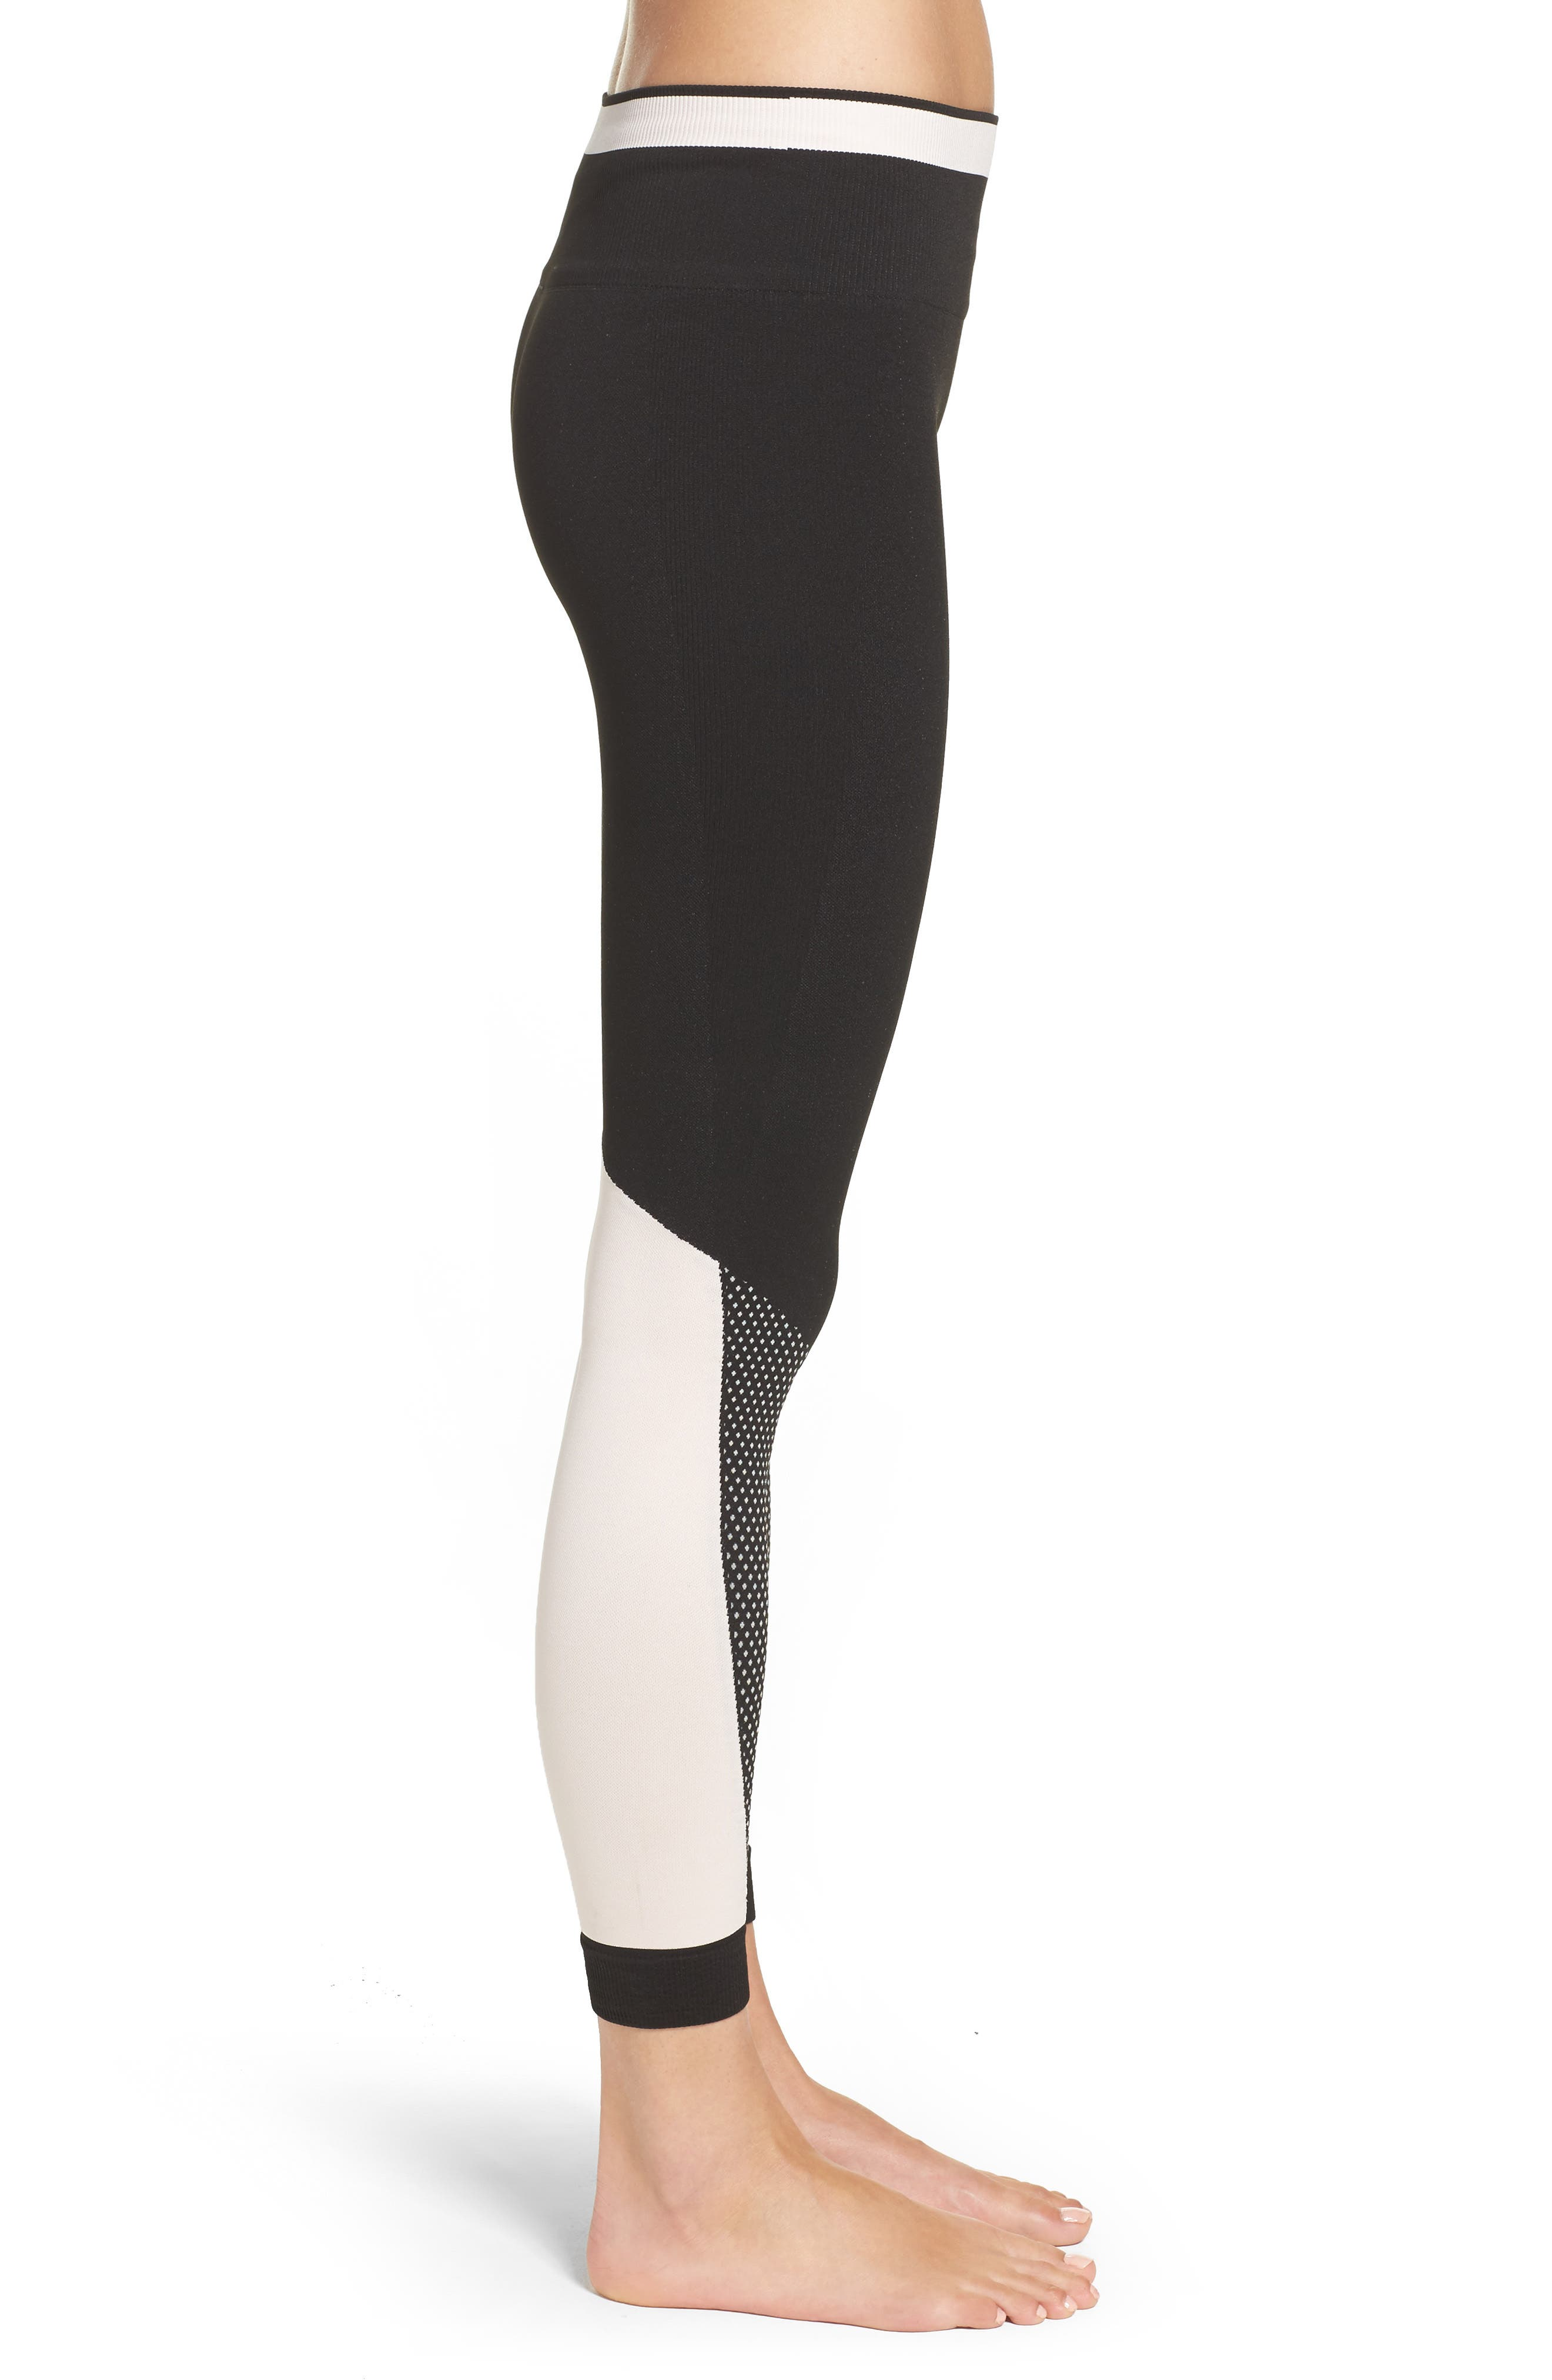 Ace Performance Tights,                             Alternate thumbnail 7, color,